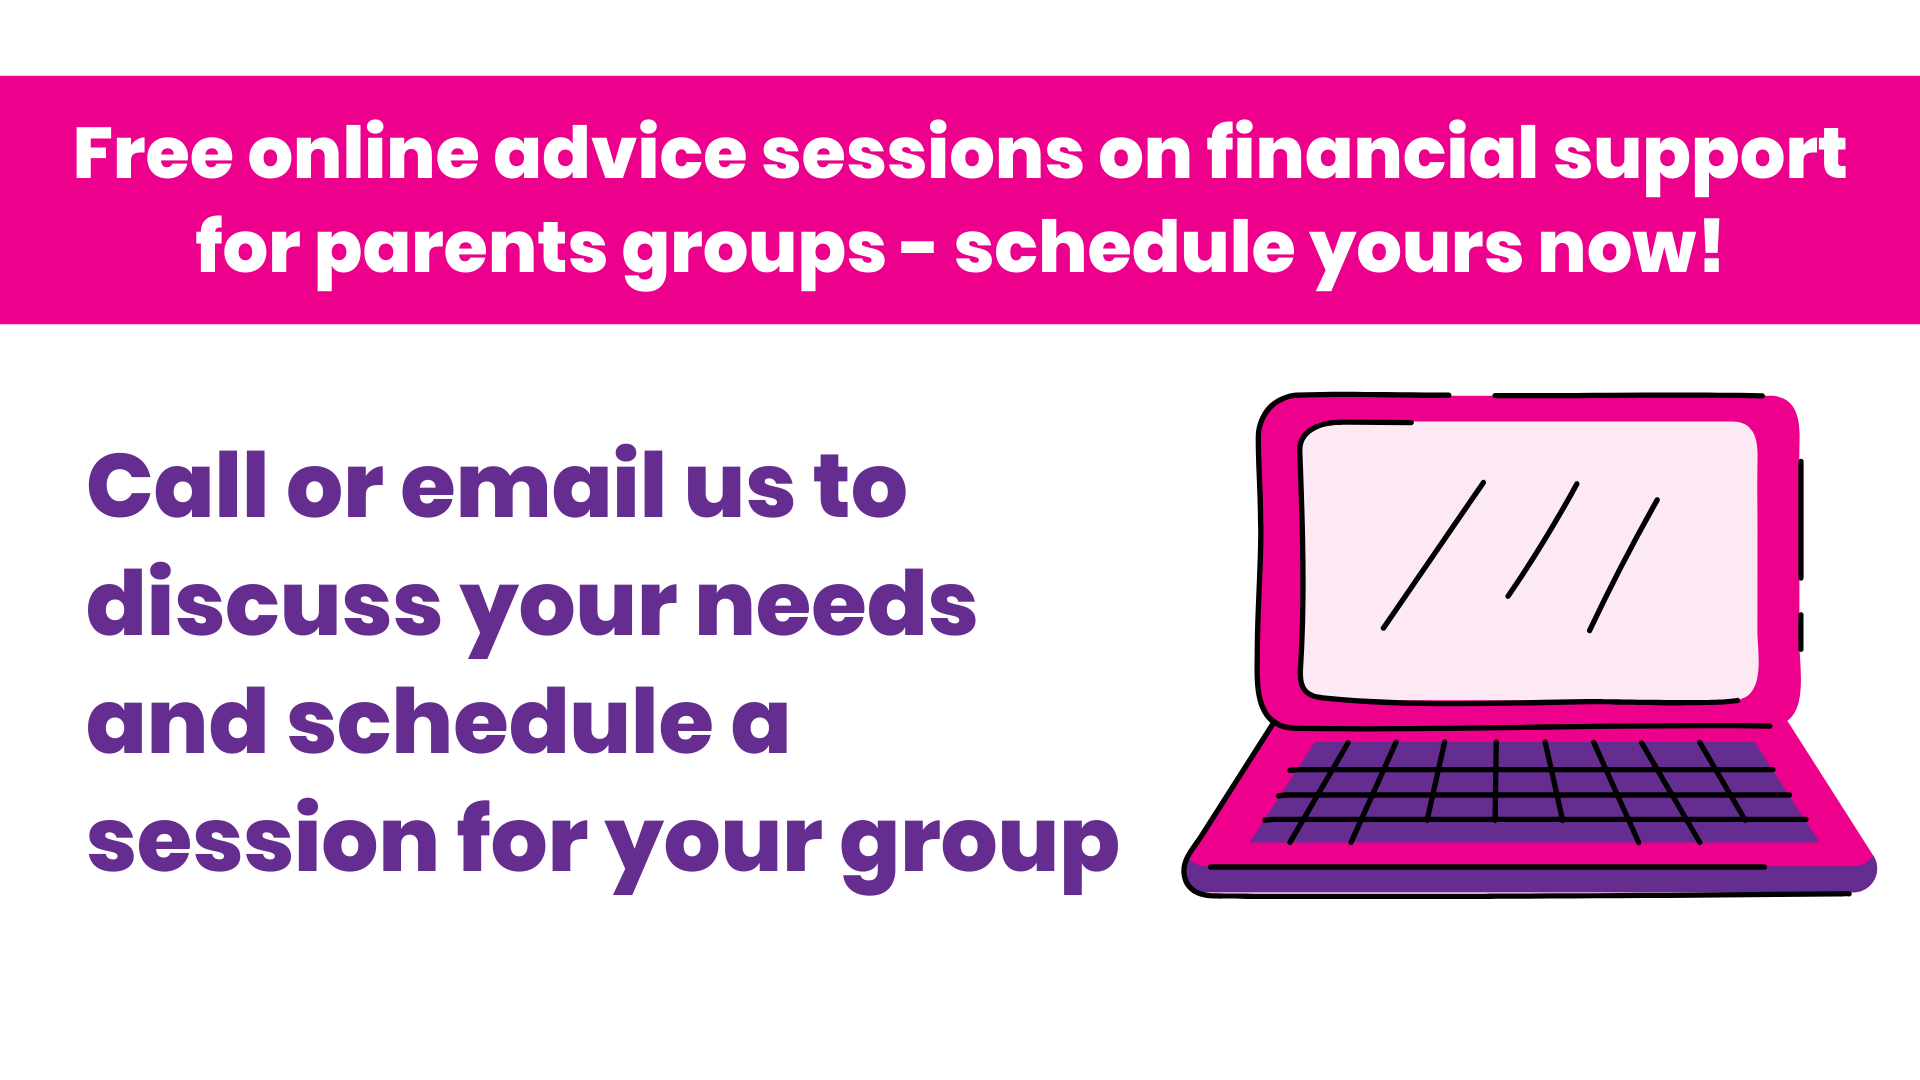 Family Benefits Advice Service now offering online advice sessions for parent groups